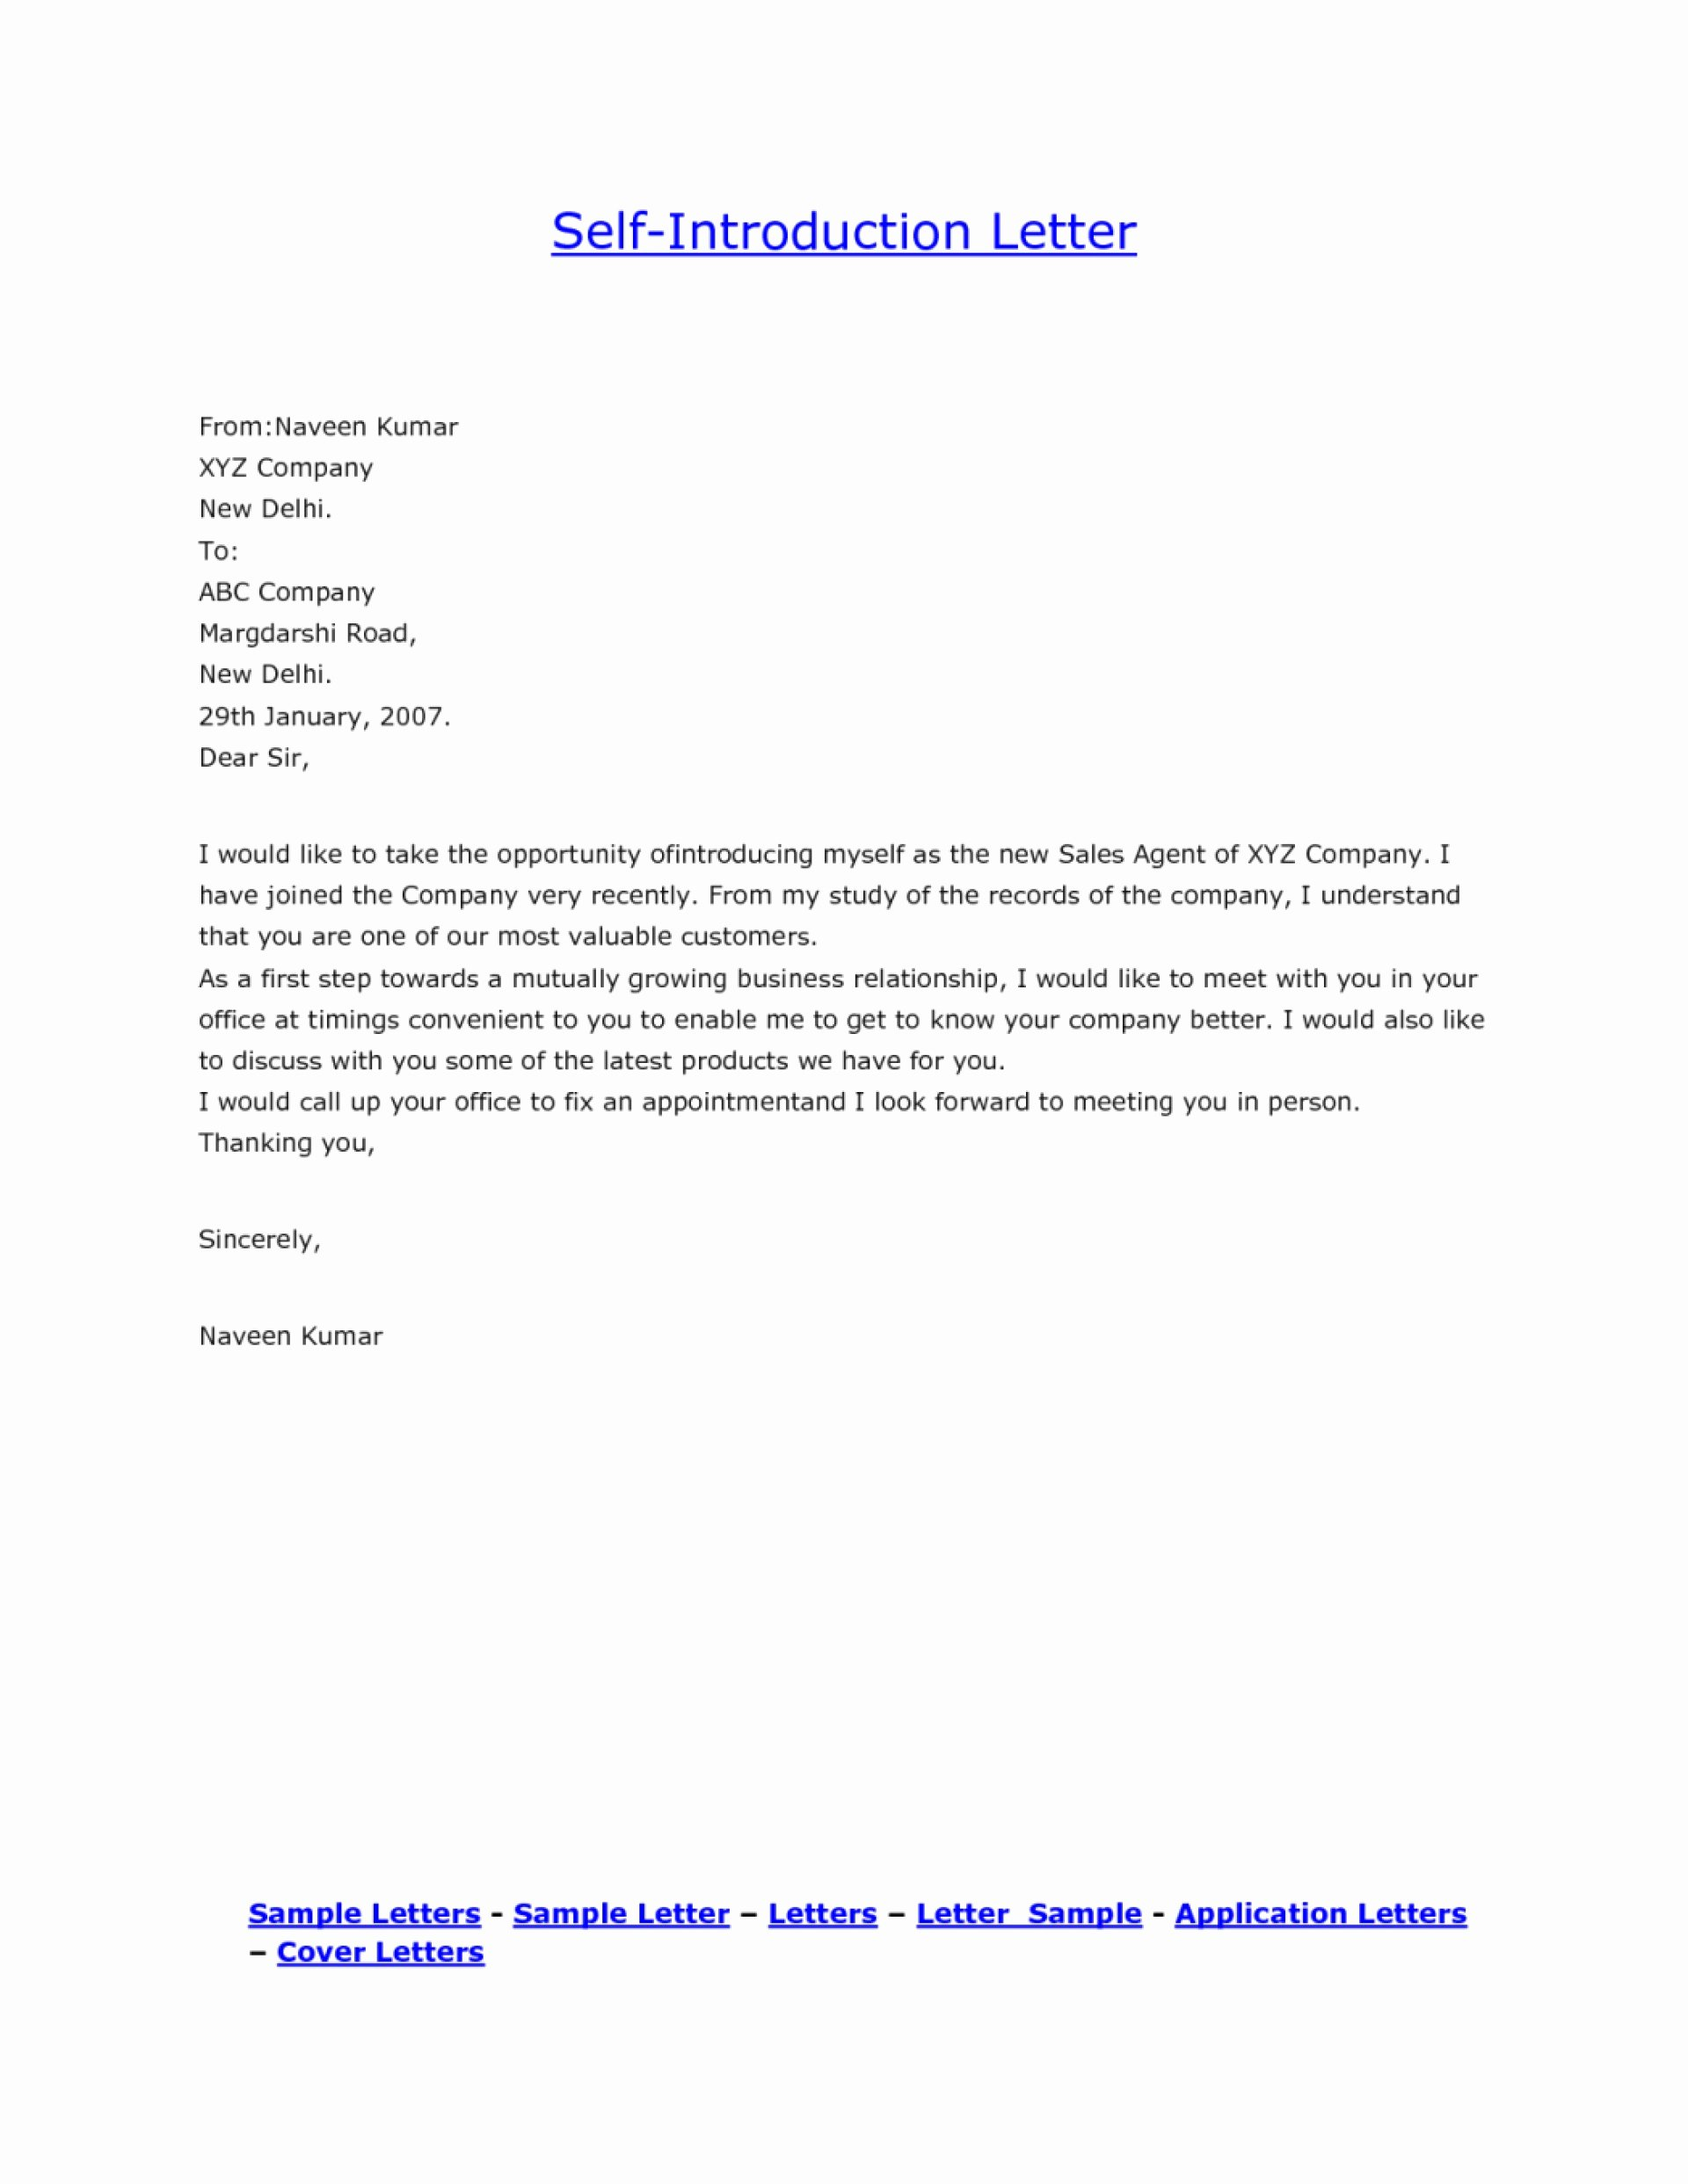 Letter Of Introduction for Yourself Fresh 015 How to Write Ann Letter About Yourself Essay Myself